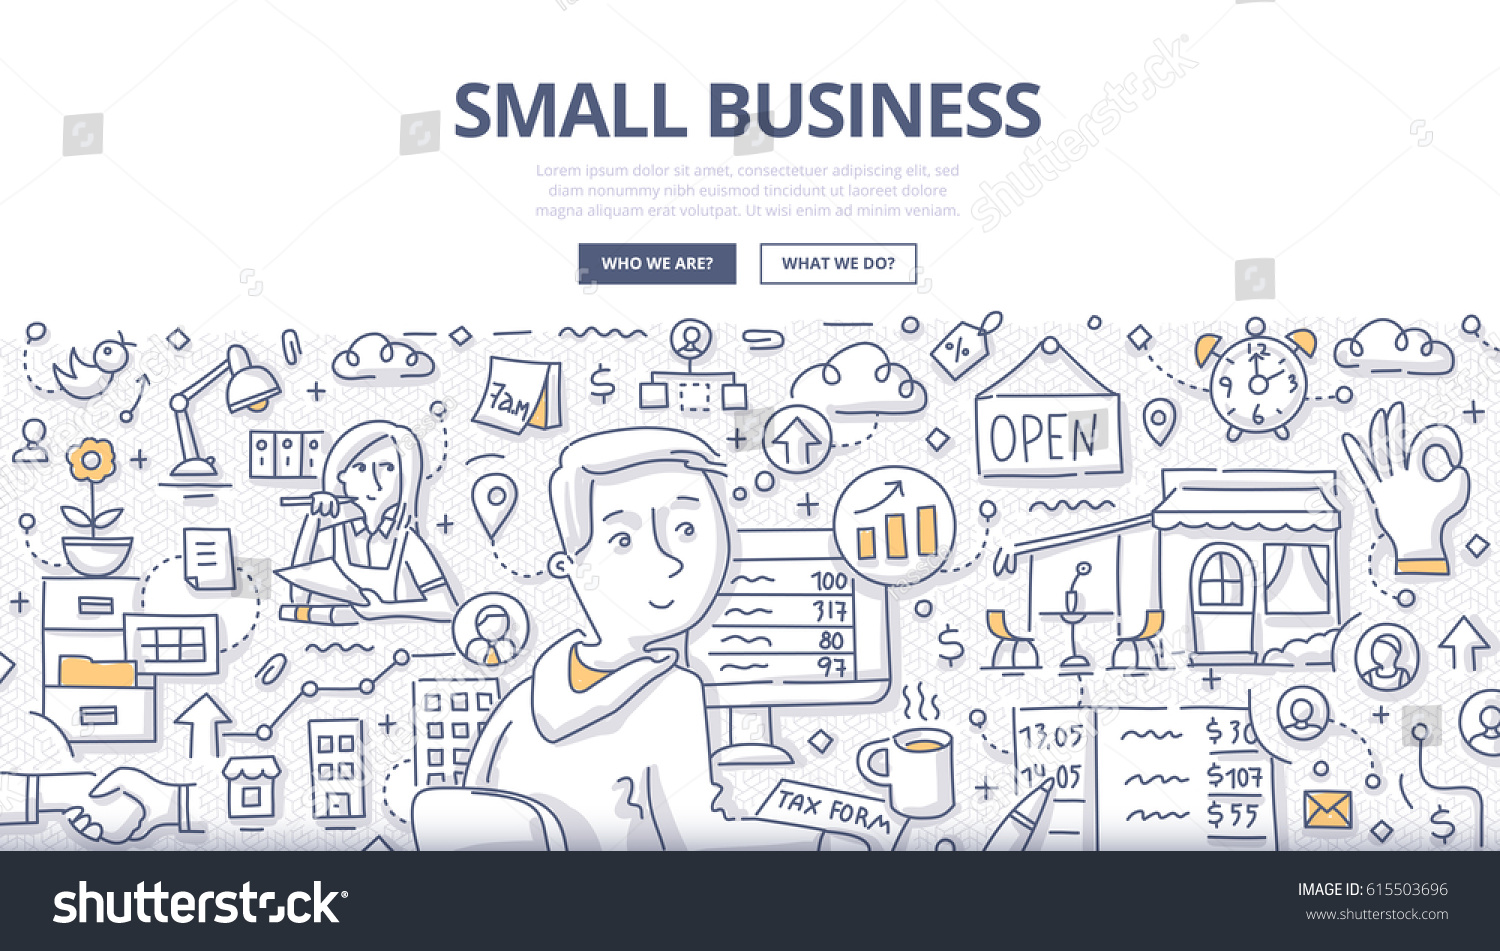 Doodle Vector Illustration Small Business Owner Stock Vector ...